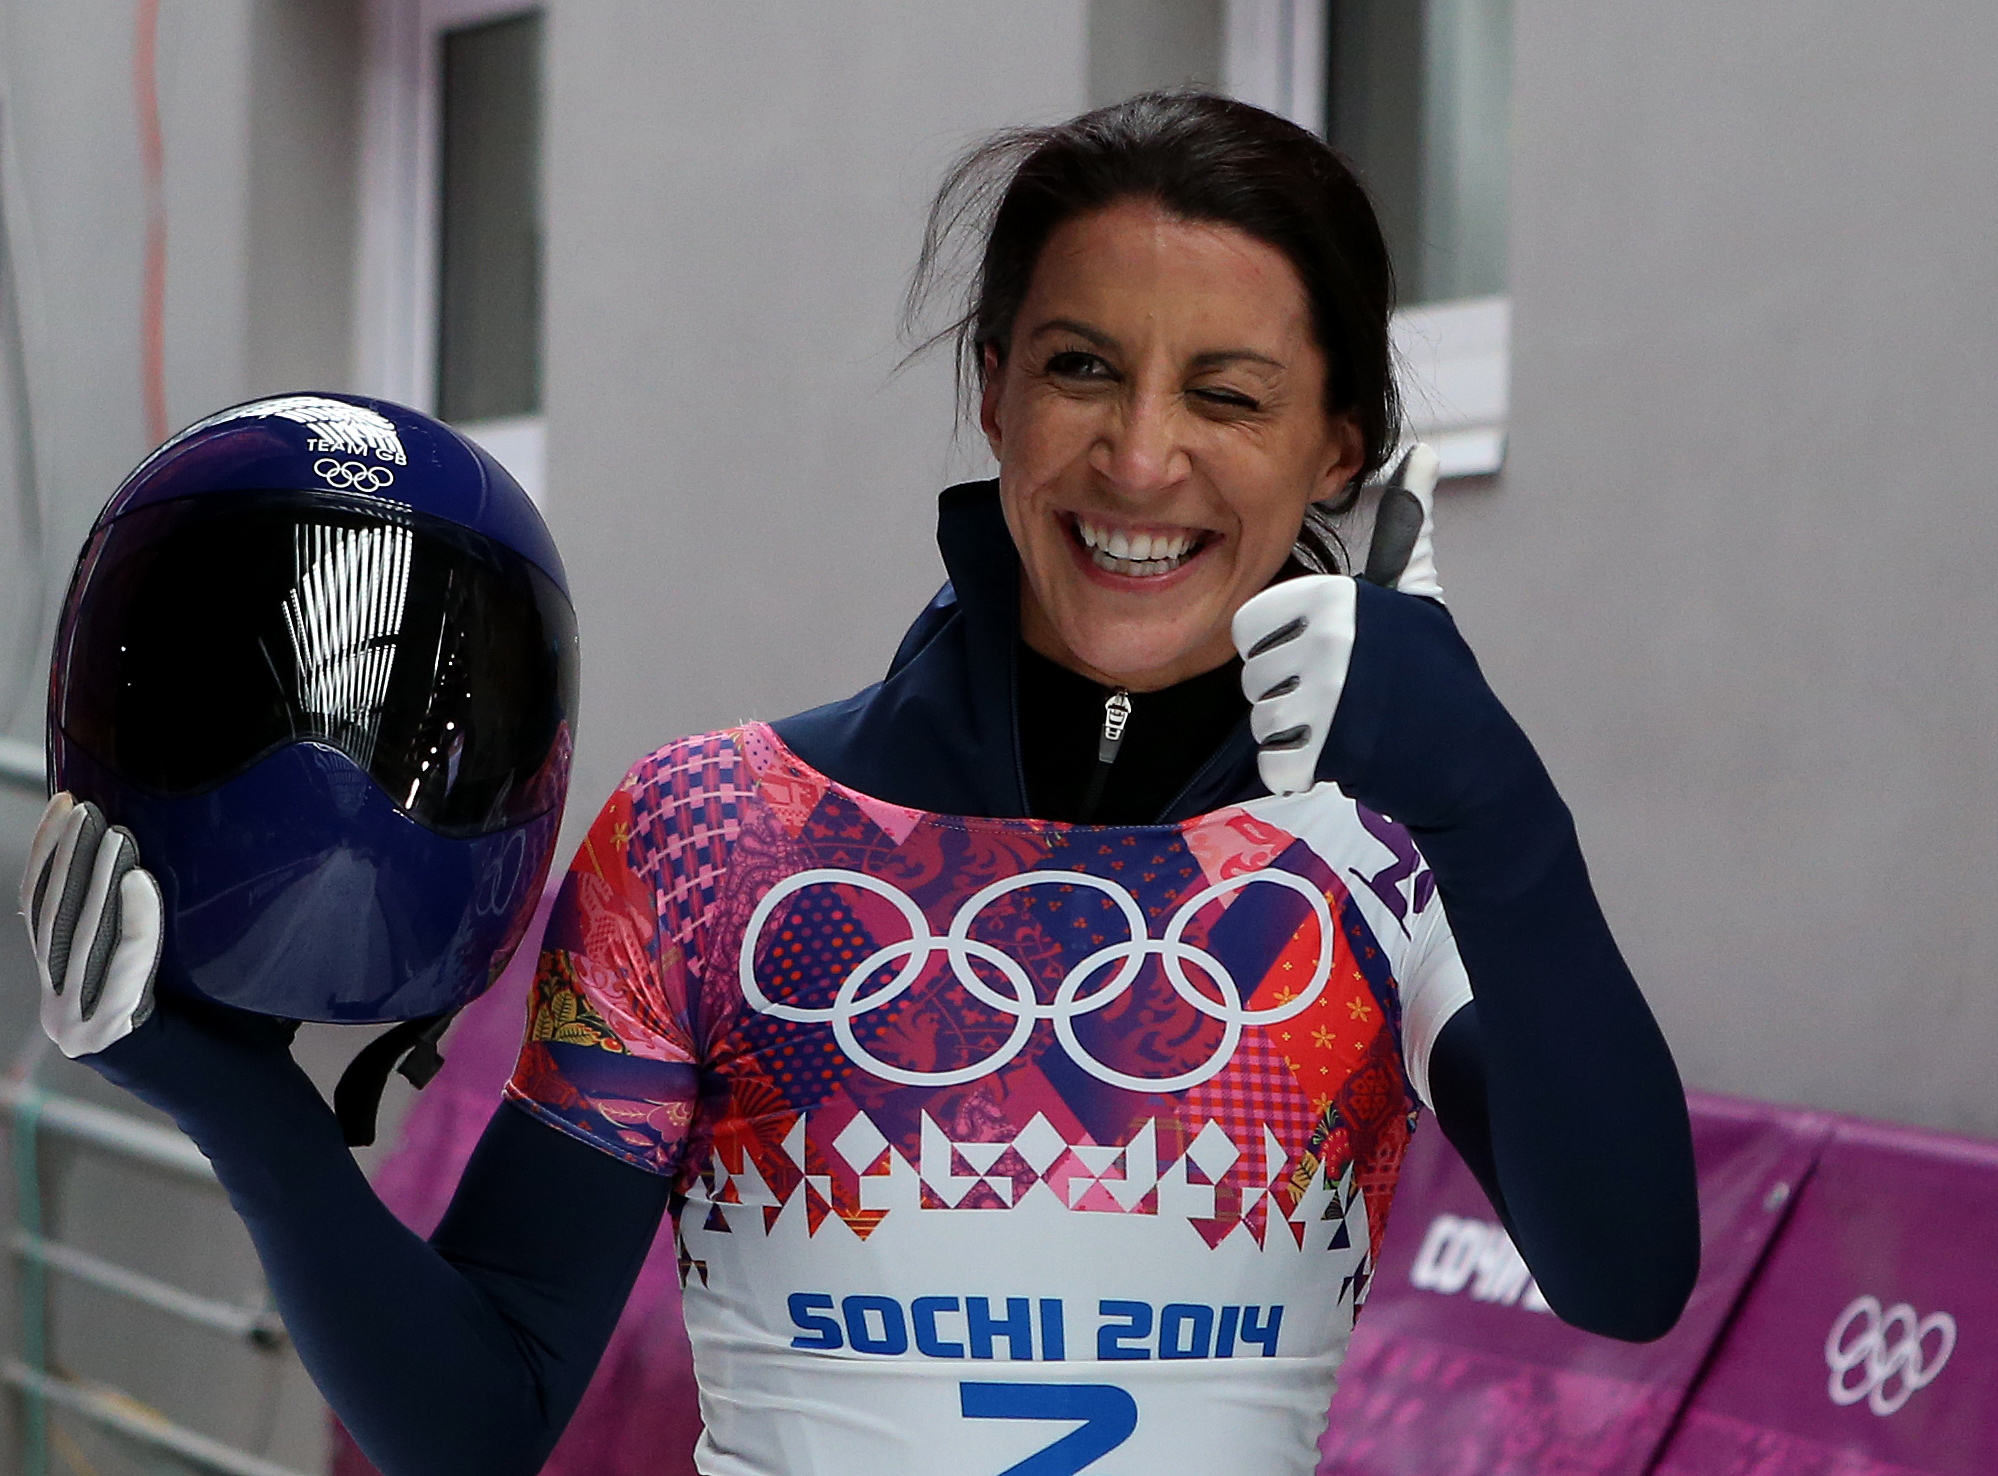 WINTER OLYMPICS: Shelley hints at Pyeongchang attempt